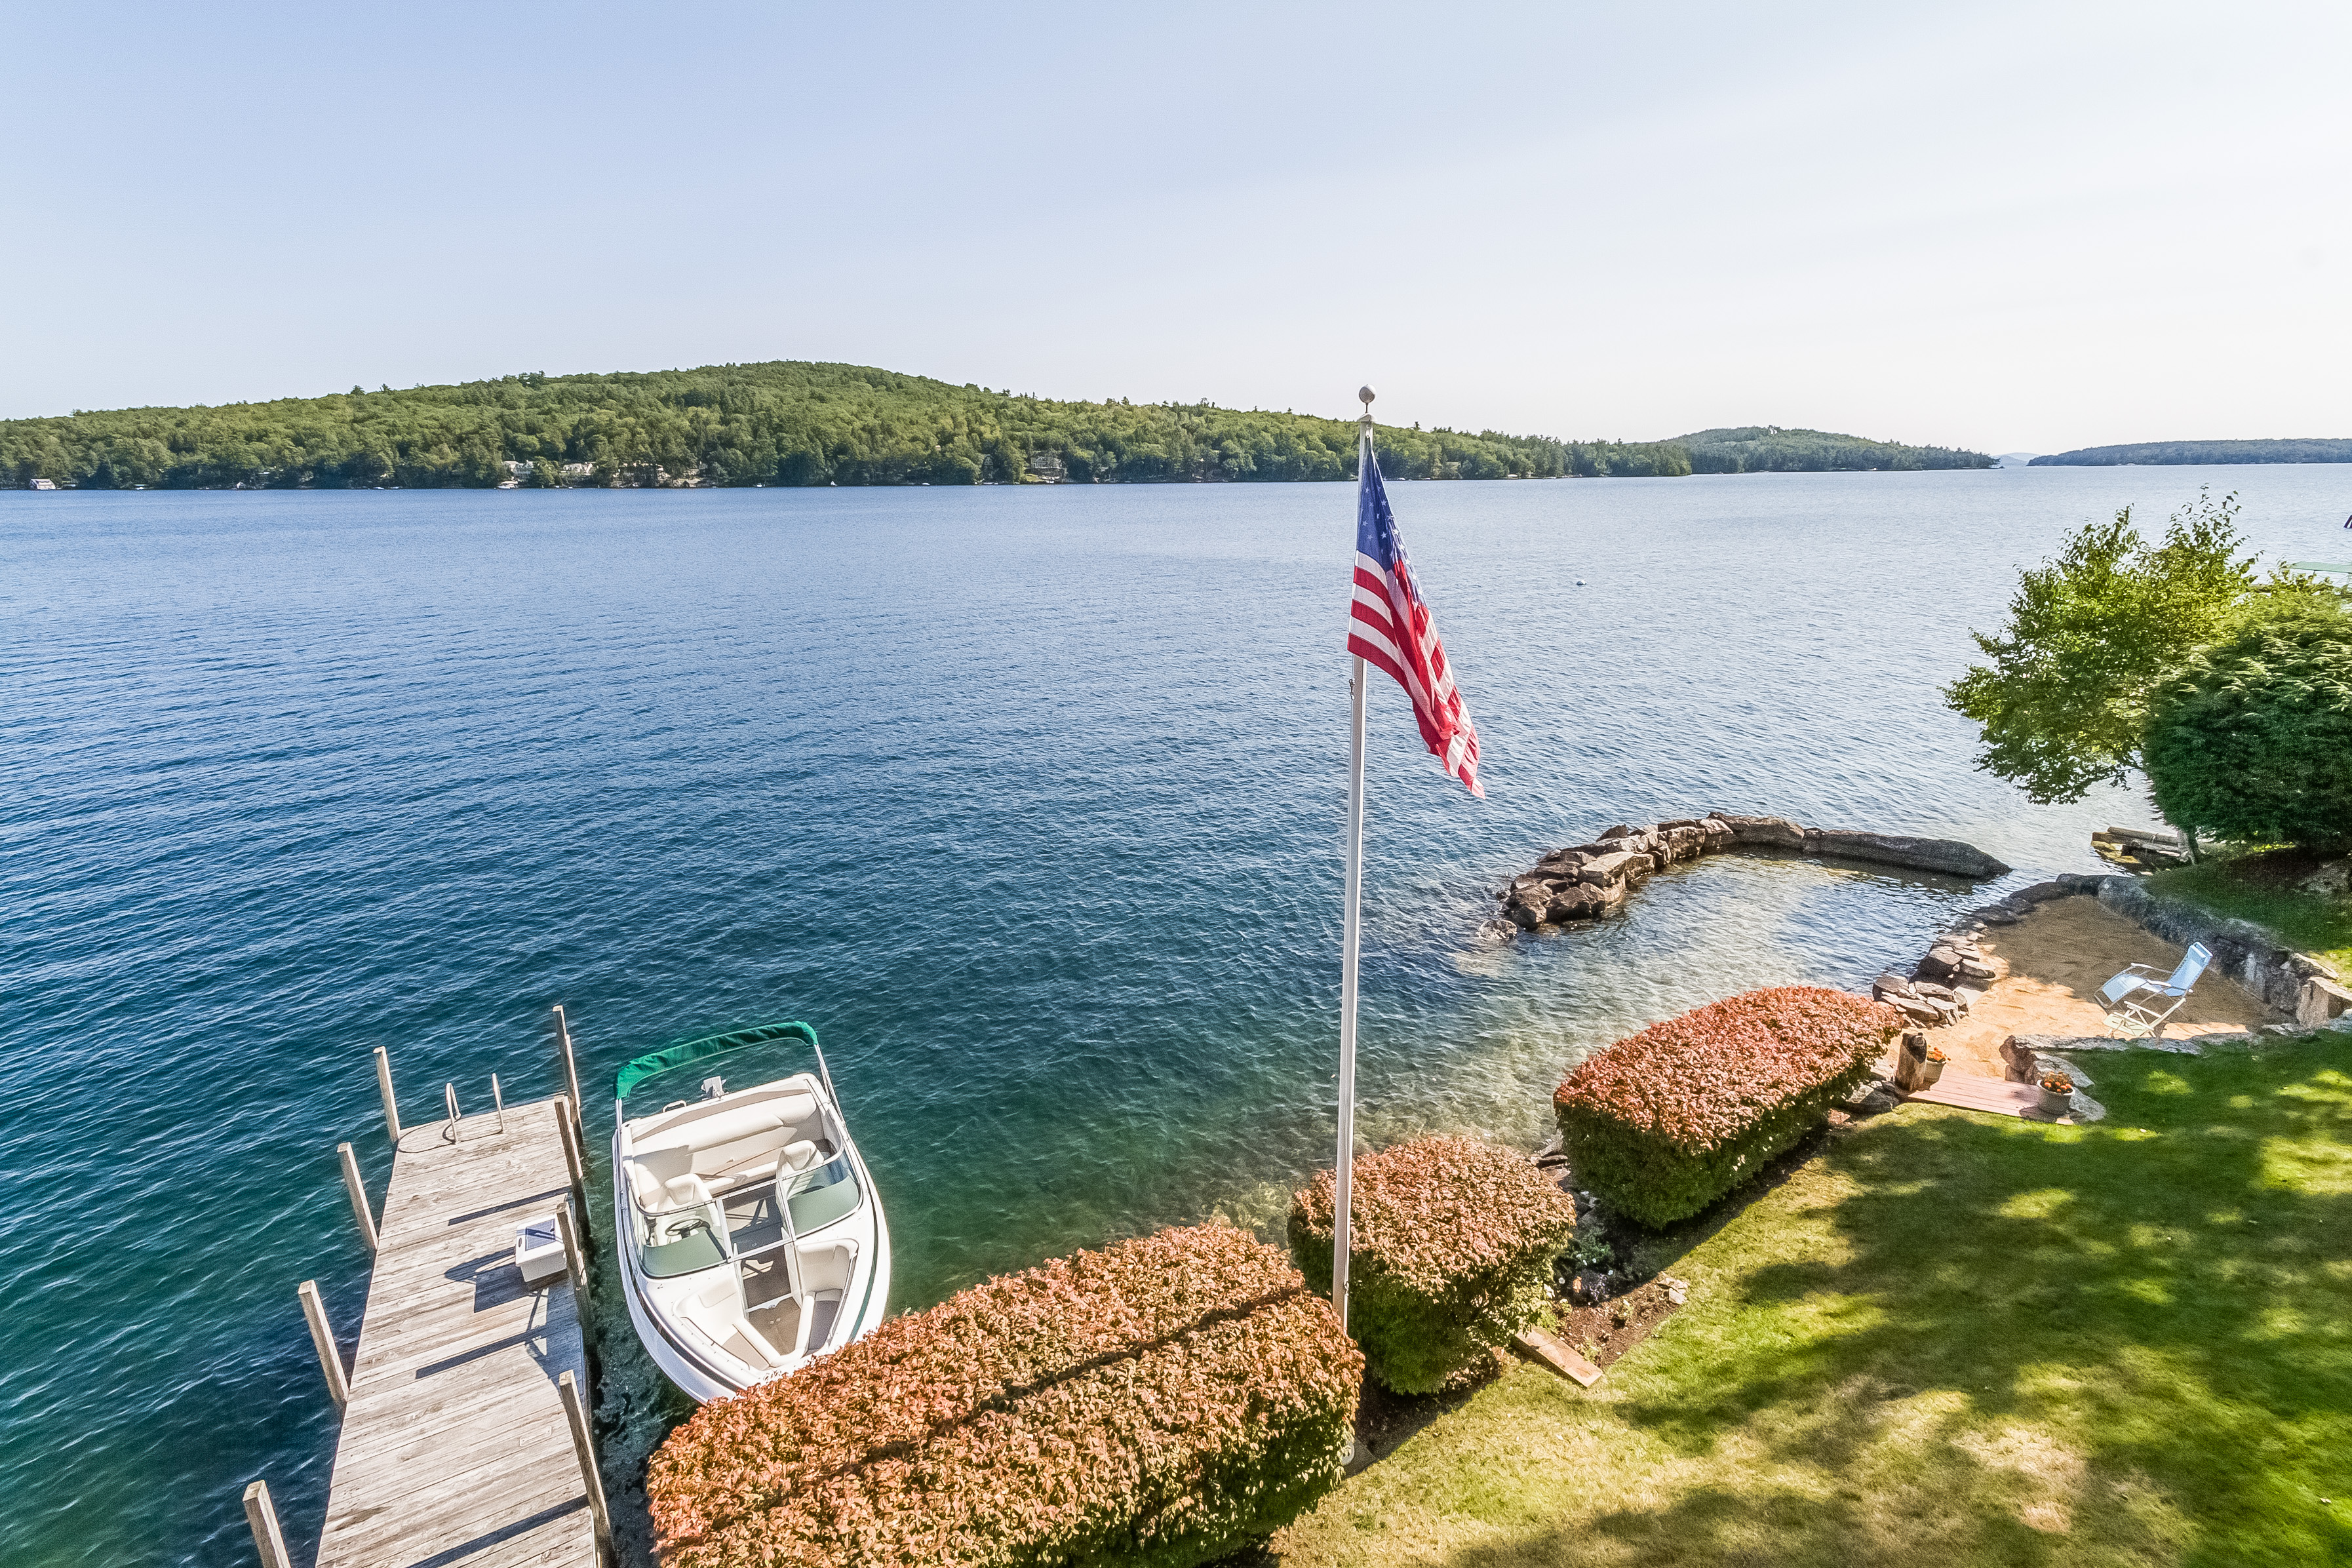 101 Neal Shore Meredith, NH Offers Panoramic Winnipesaukee Views